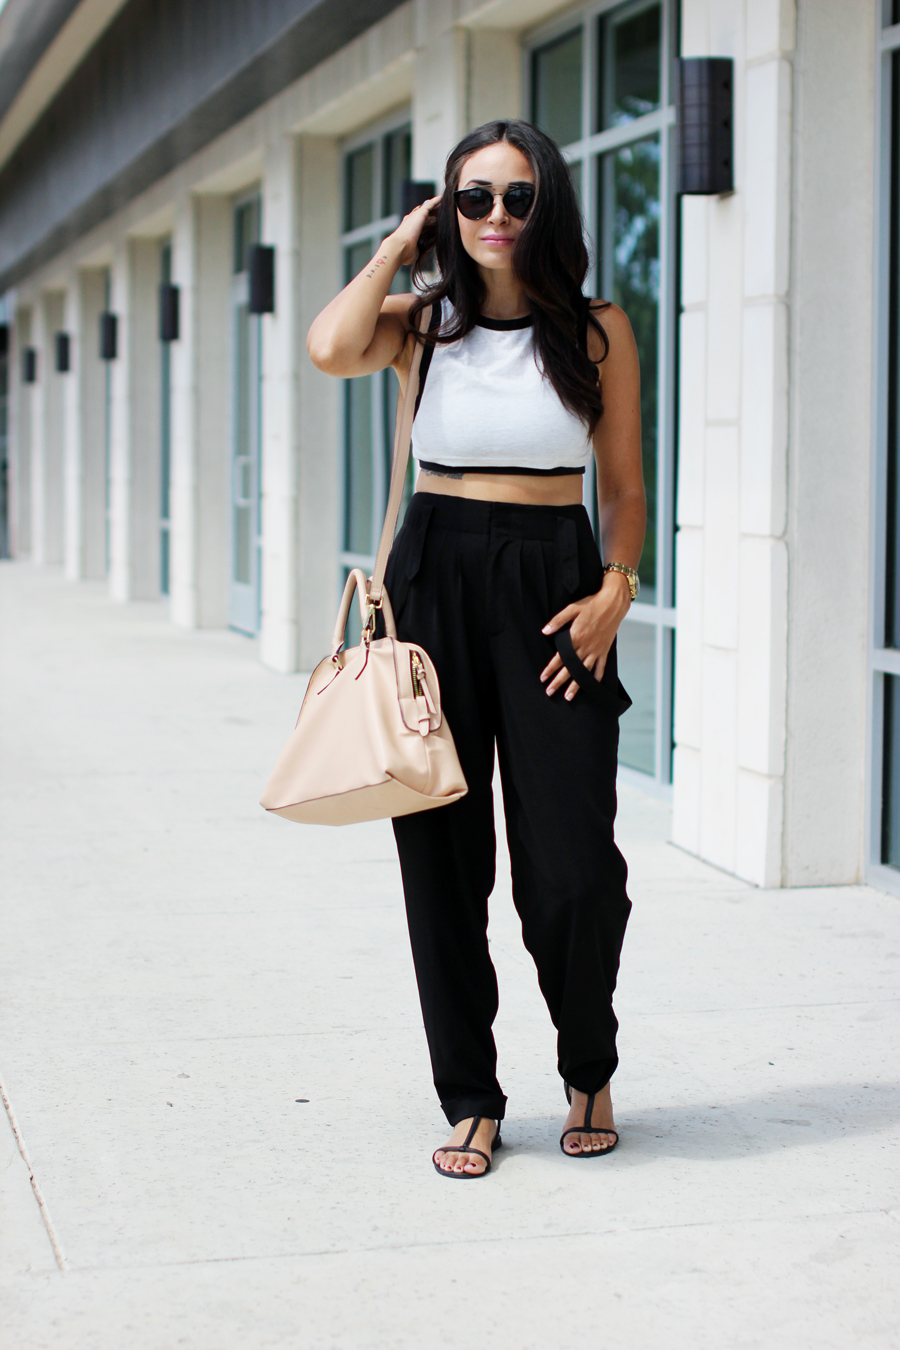 FTT-OVERALL-TROUSER-PANT-CROP-TOP-BLUSH-BAG-6